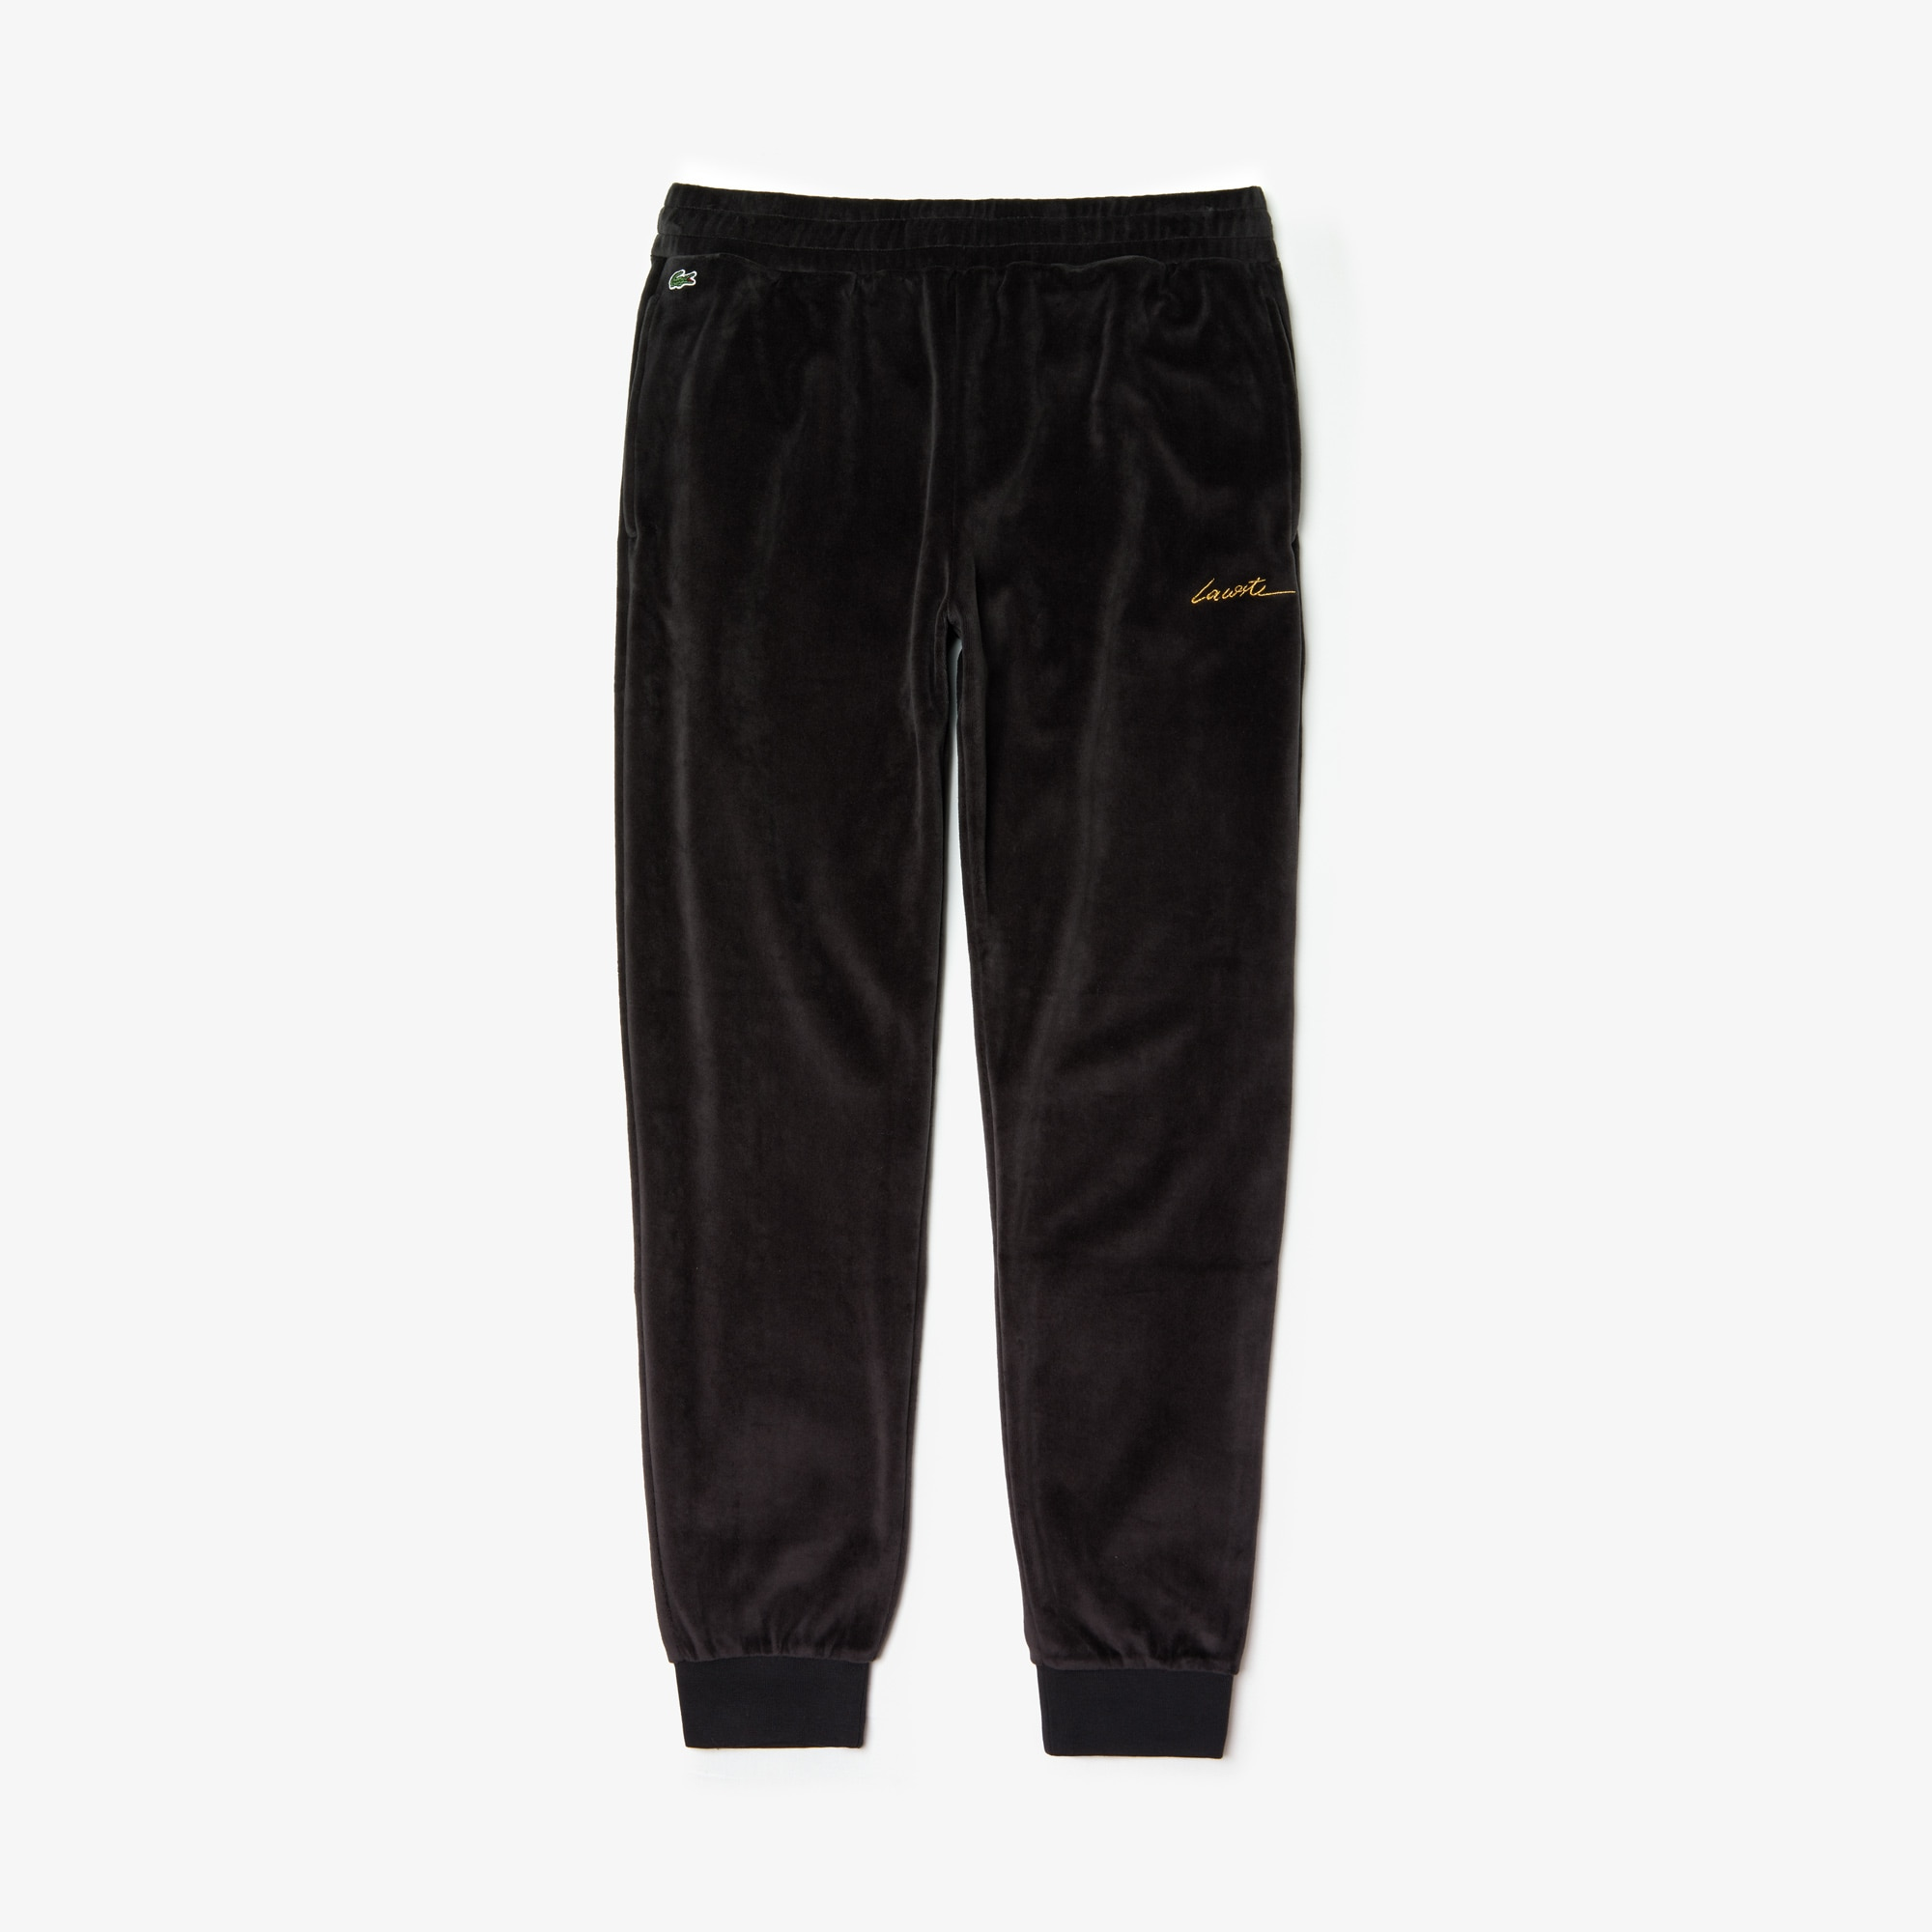 Men's LIVE Golden Signature Velvet Sweatpants